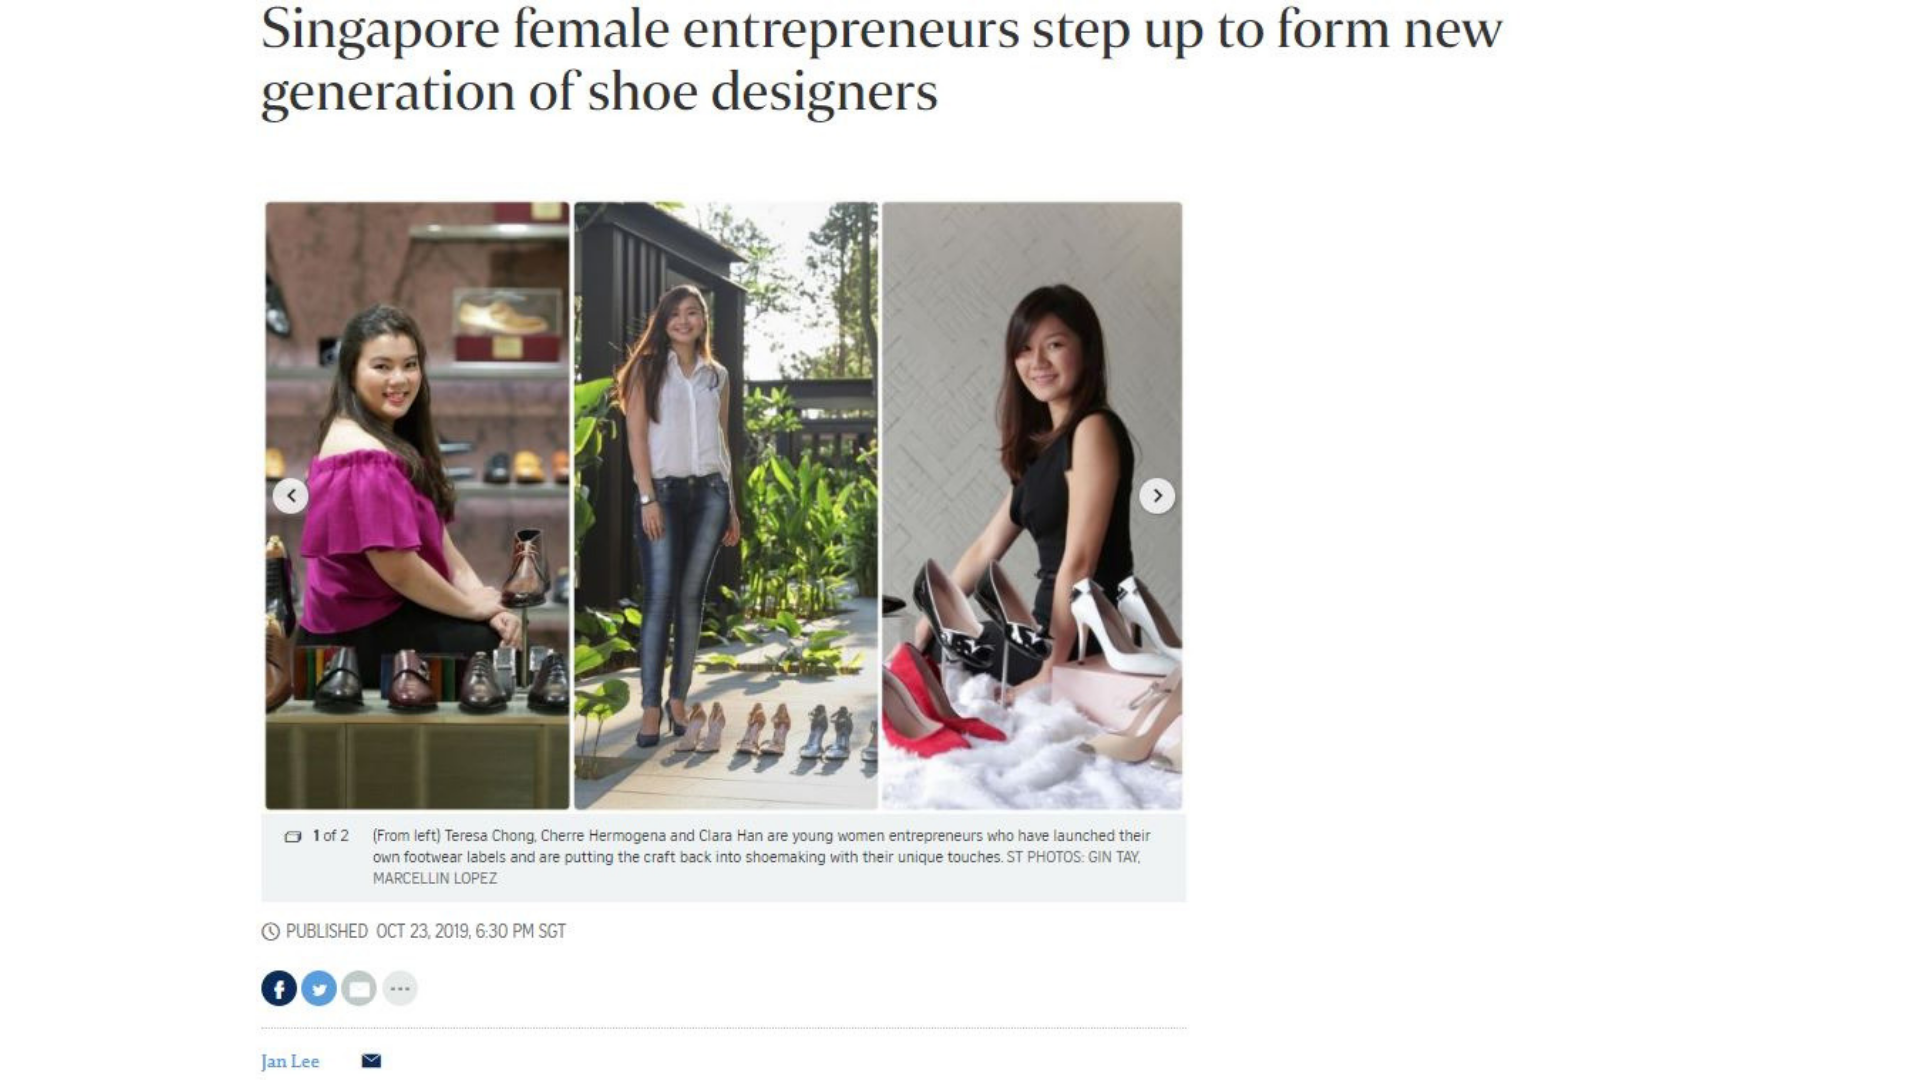 A snippet of a newspaper article written by Jan Lee with a headline: Singapore Female Entrepreneurs step up to form new generation of shoe designer.